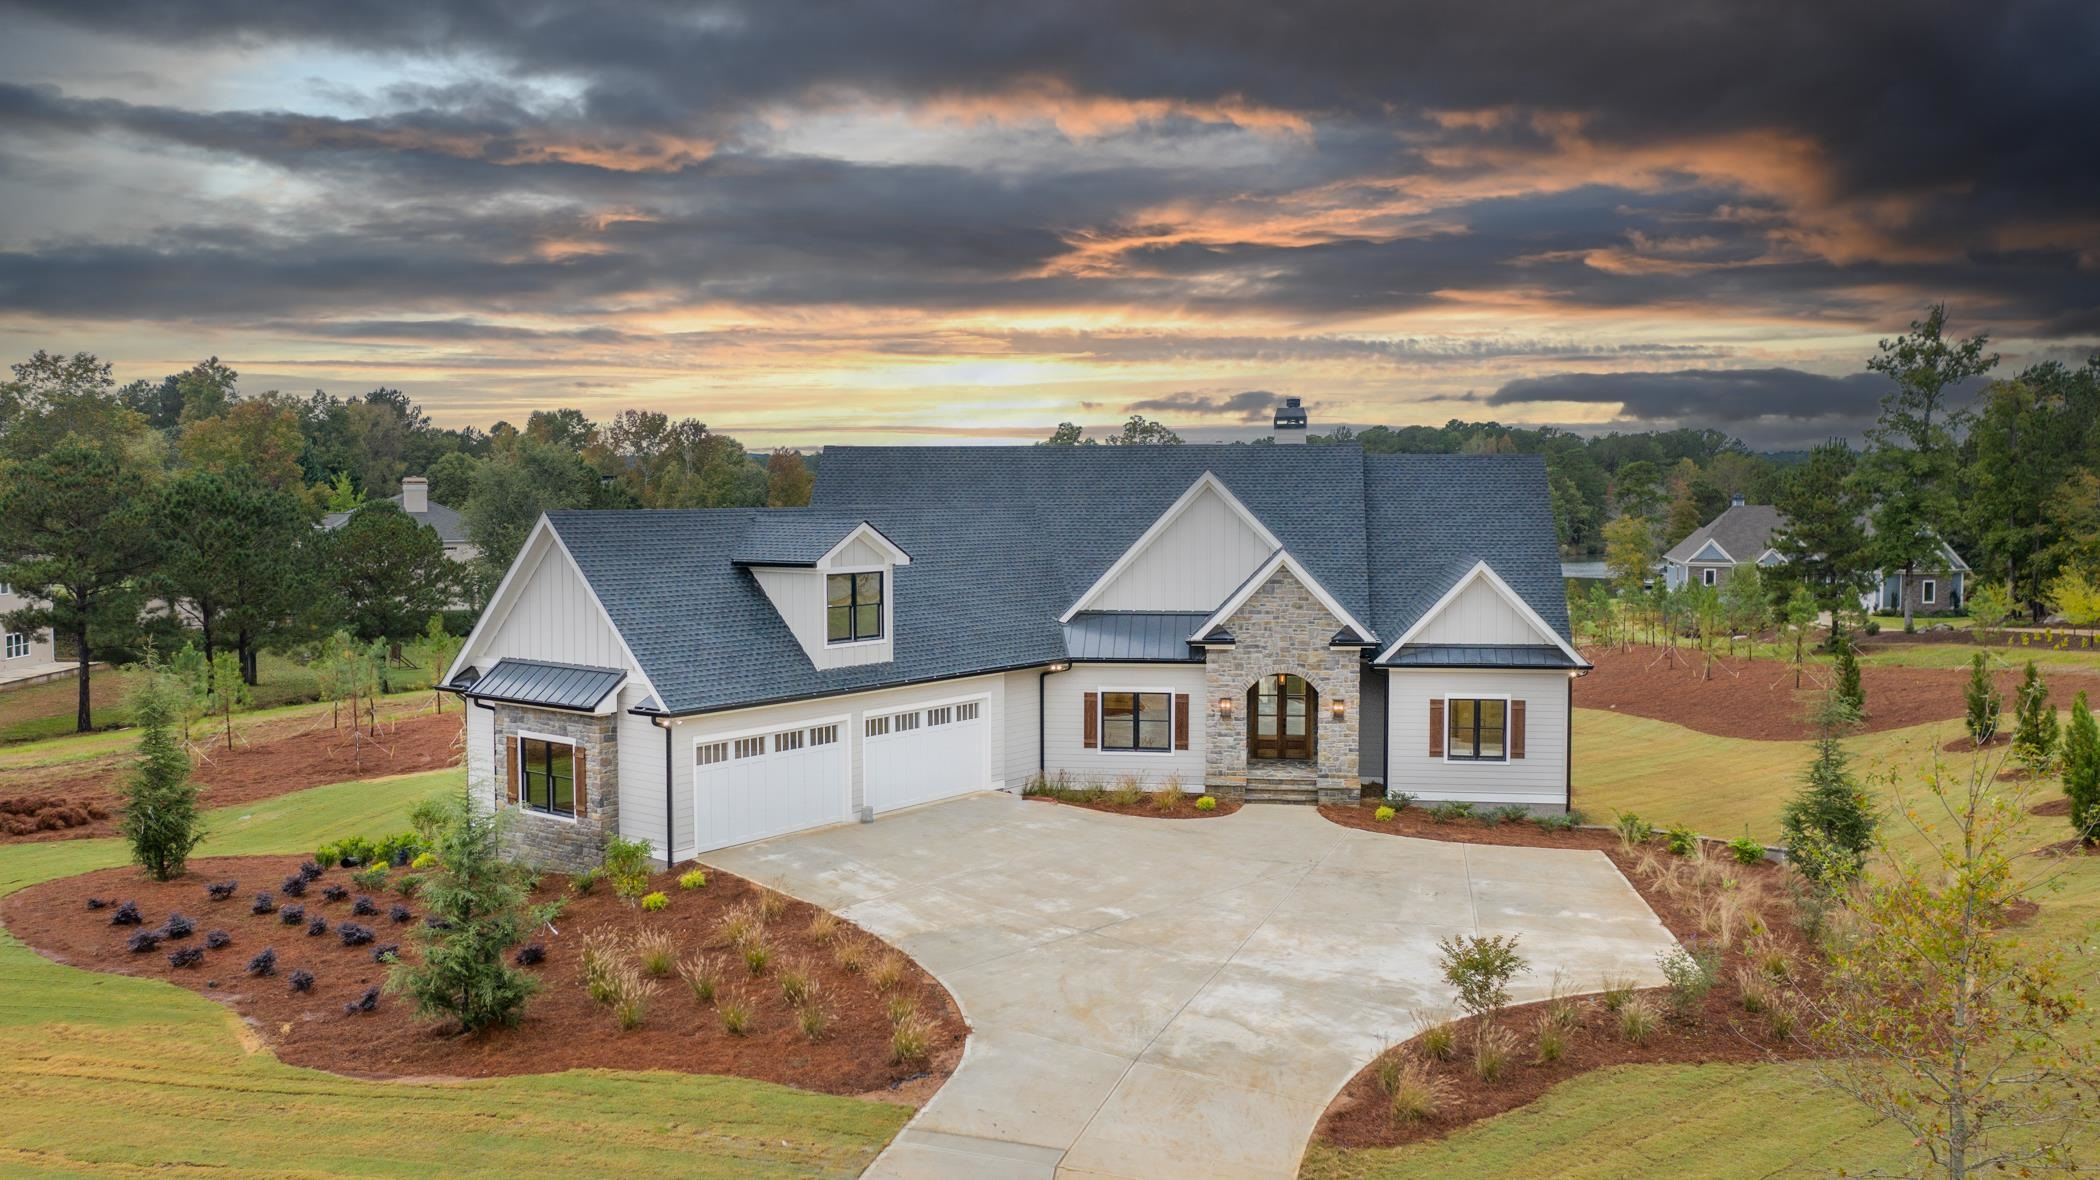 Property for sale at 2041 CLEARWATER DRIVE, White Plains,  Georgia 30678